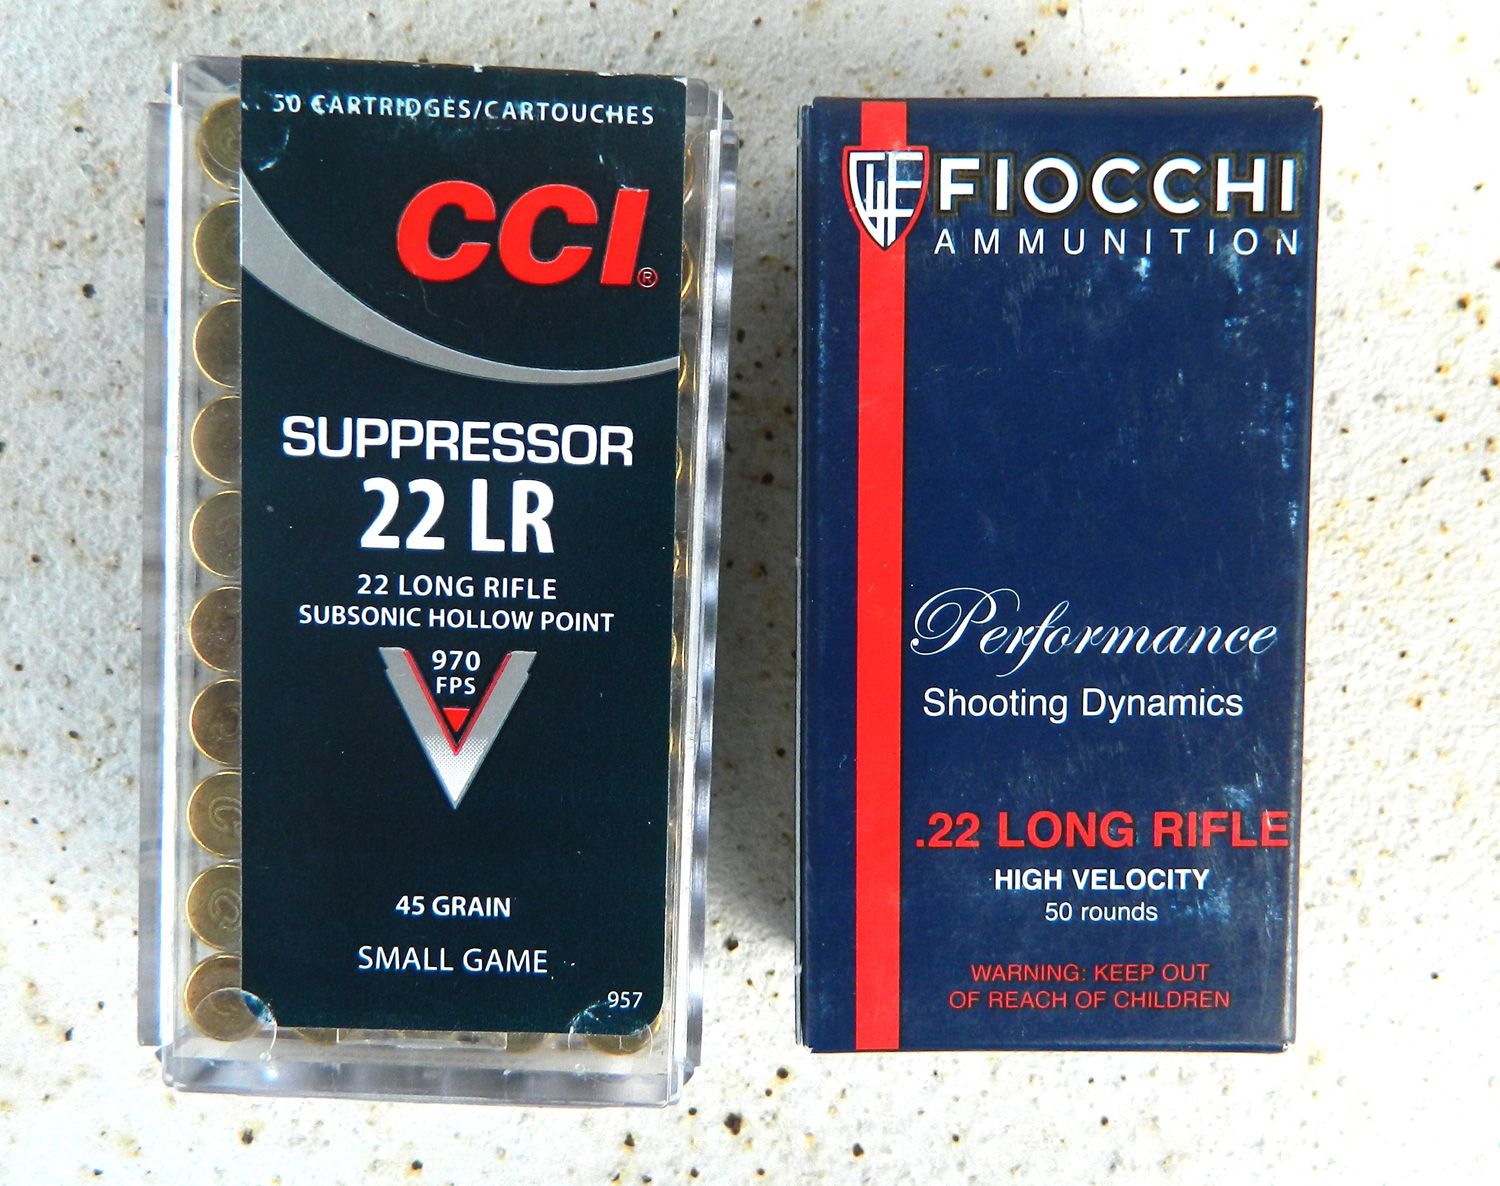 two boxes of .22 lr ammunition.